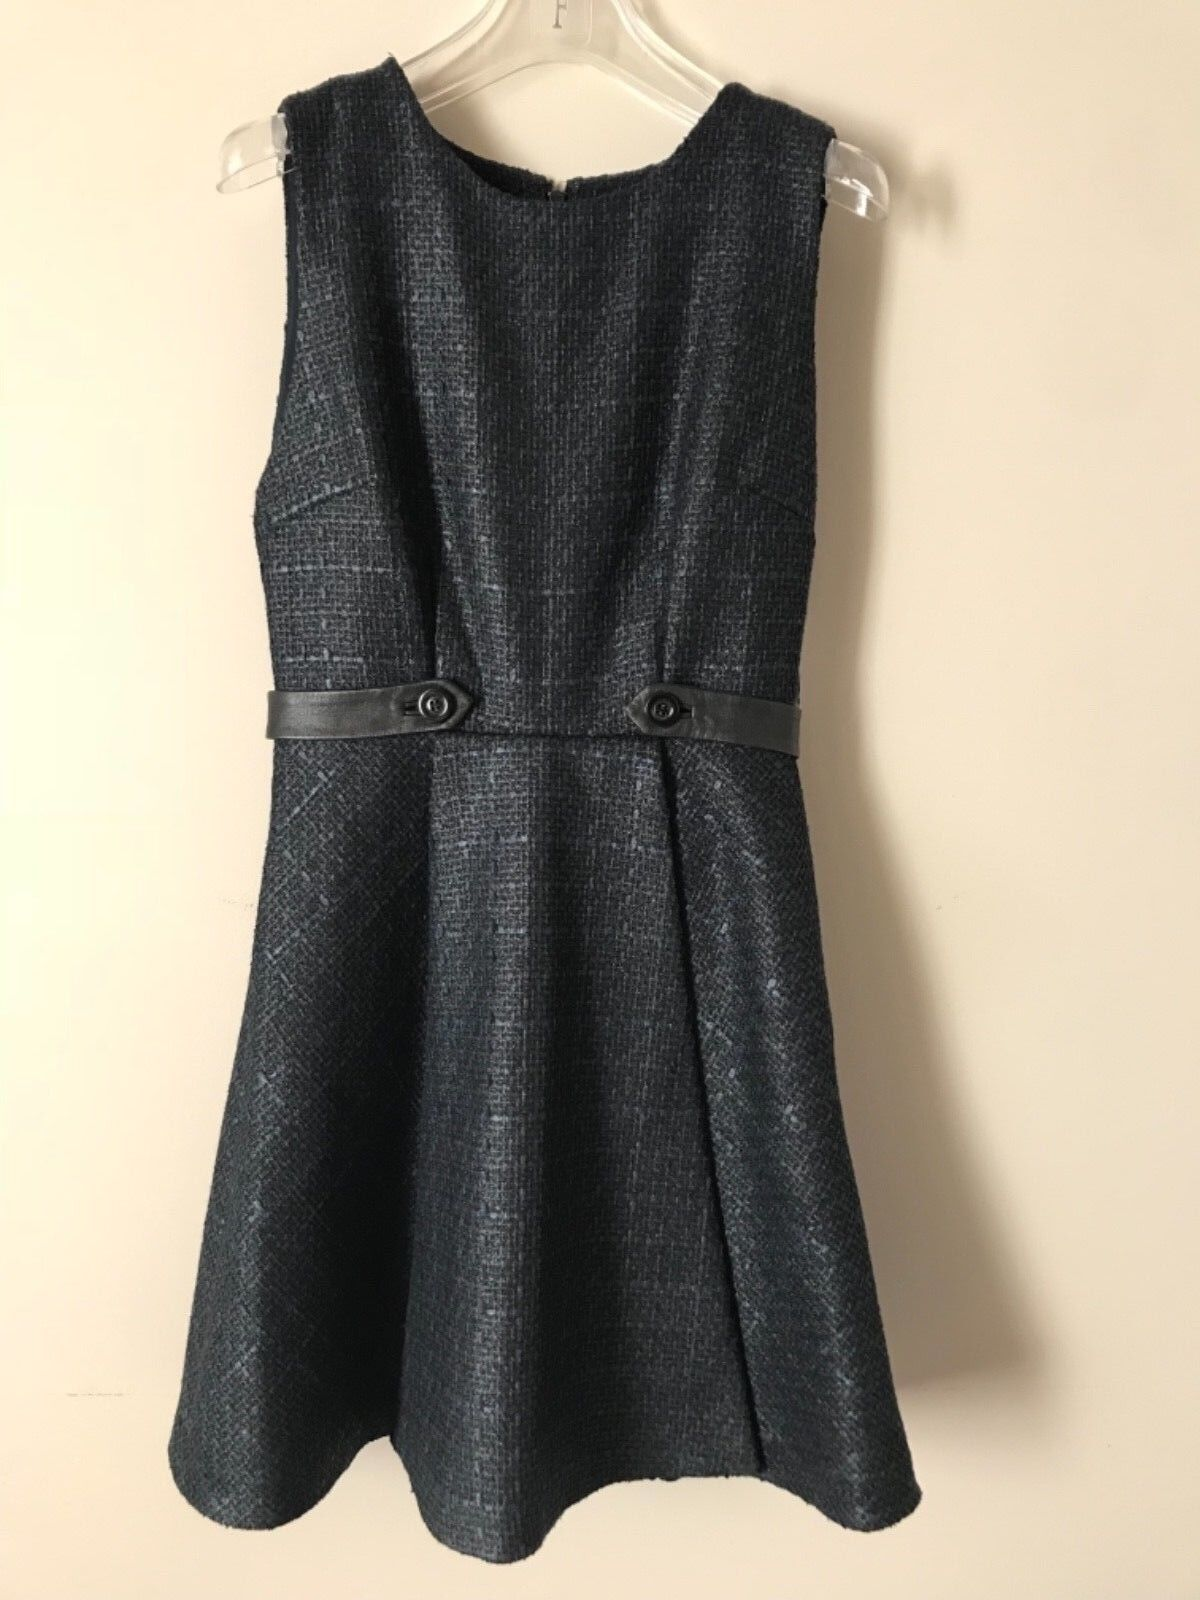 e60f506ac0 368 NWT Alice + Olivia Navy Tweed Fit and Flare Dress Size 2 ...